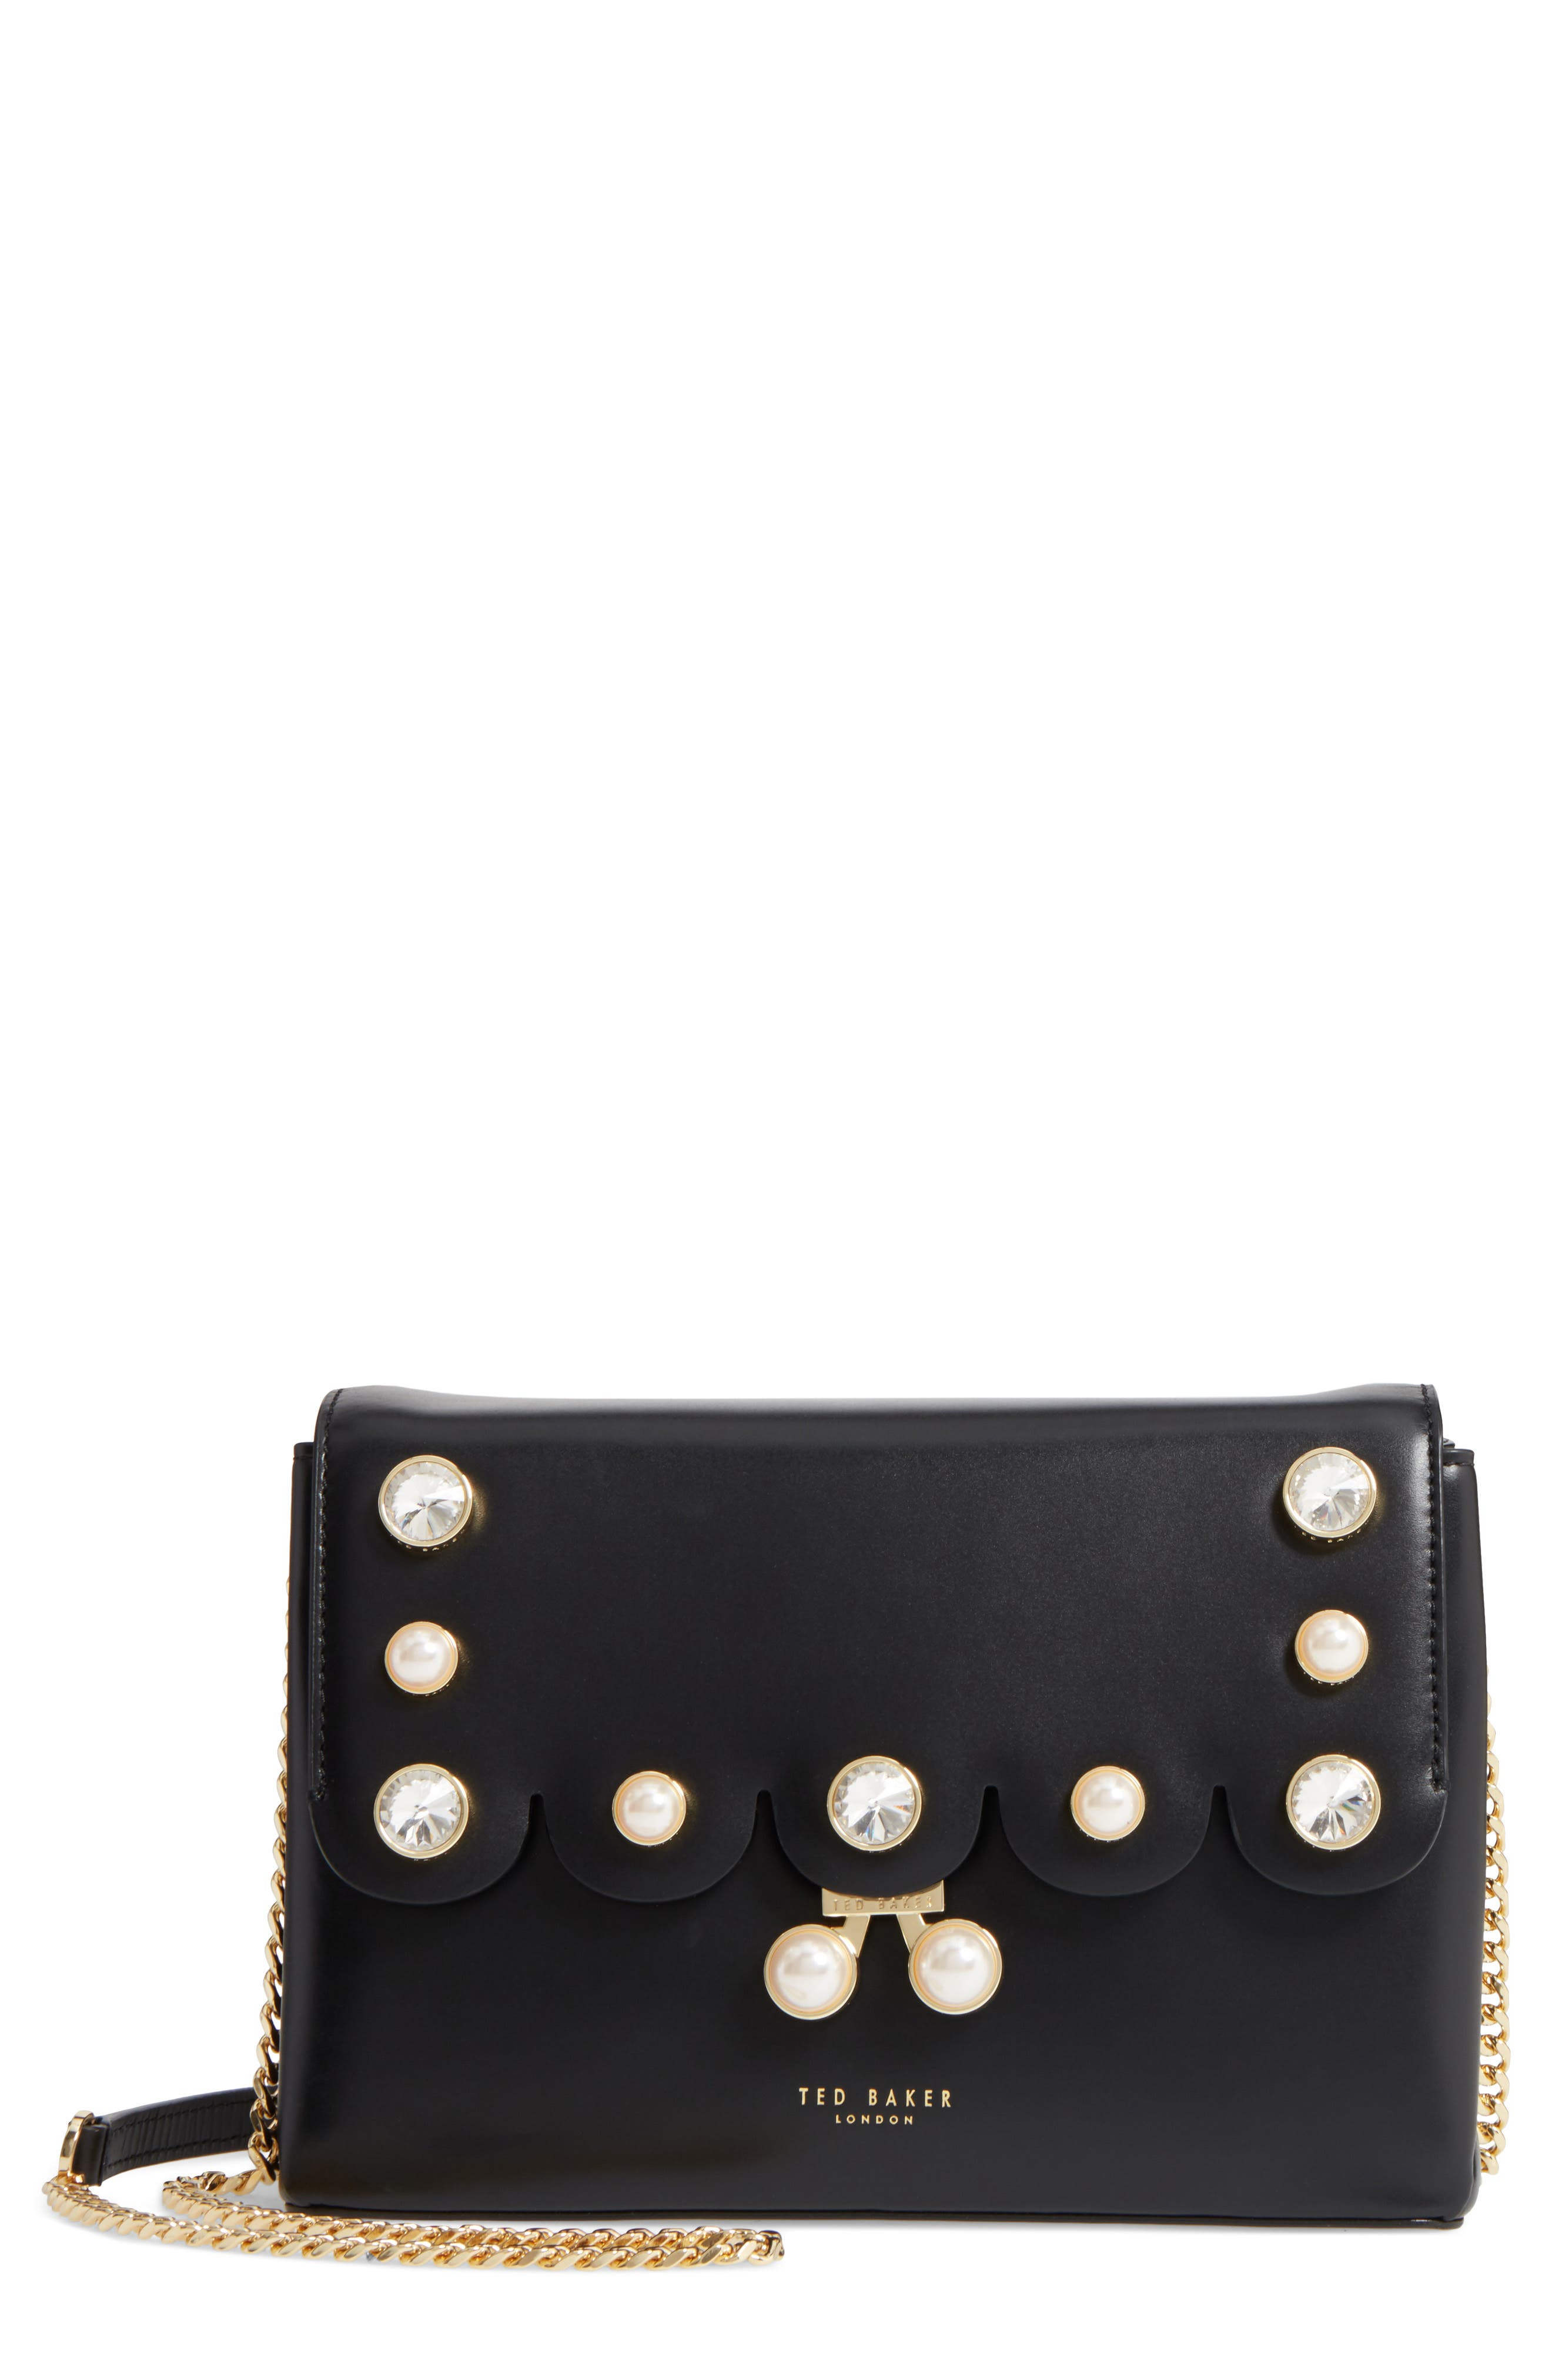 Alternate Image 1 Selected - Ted Baker London Saraa Leather Crossbody Bag